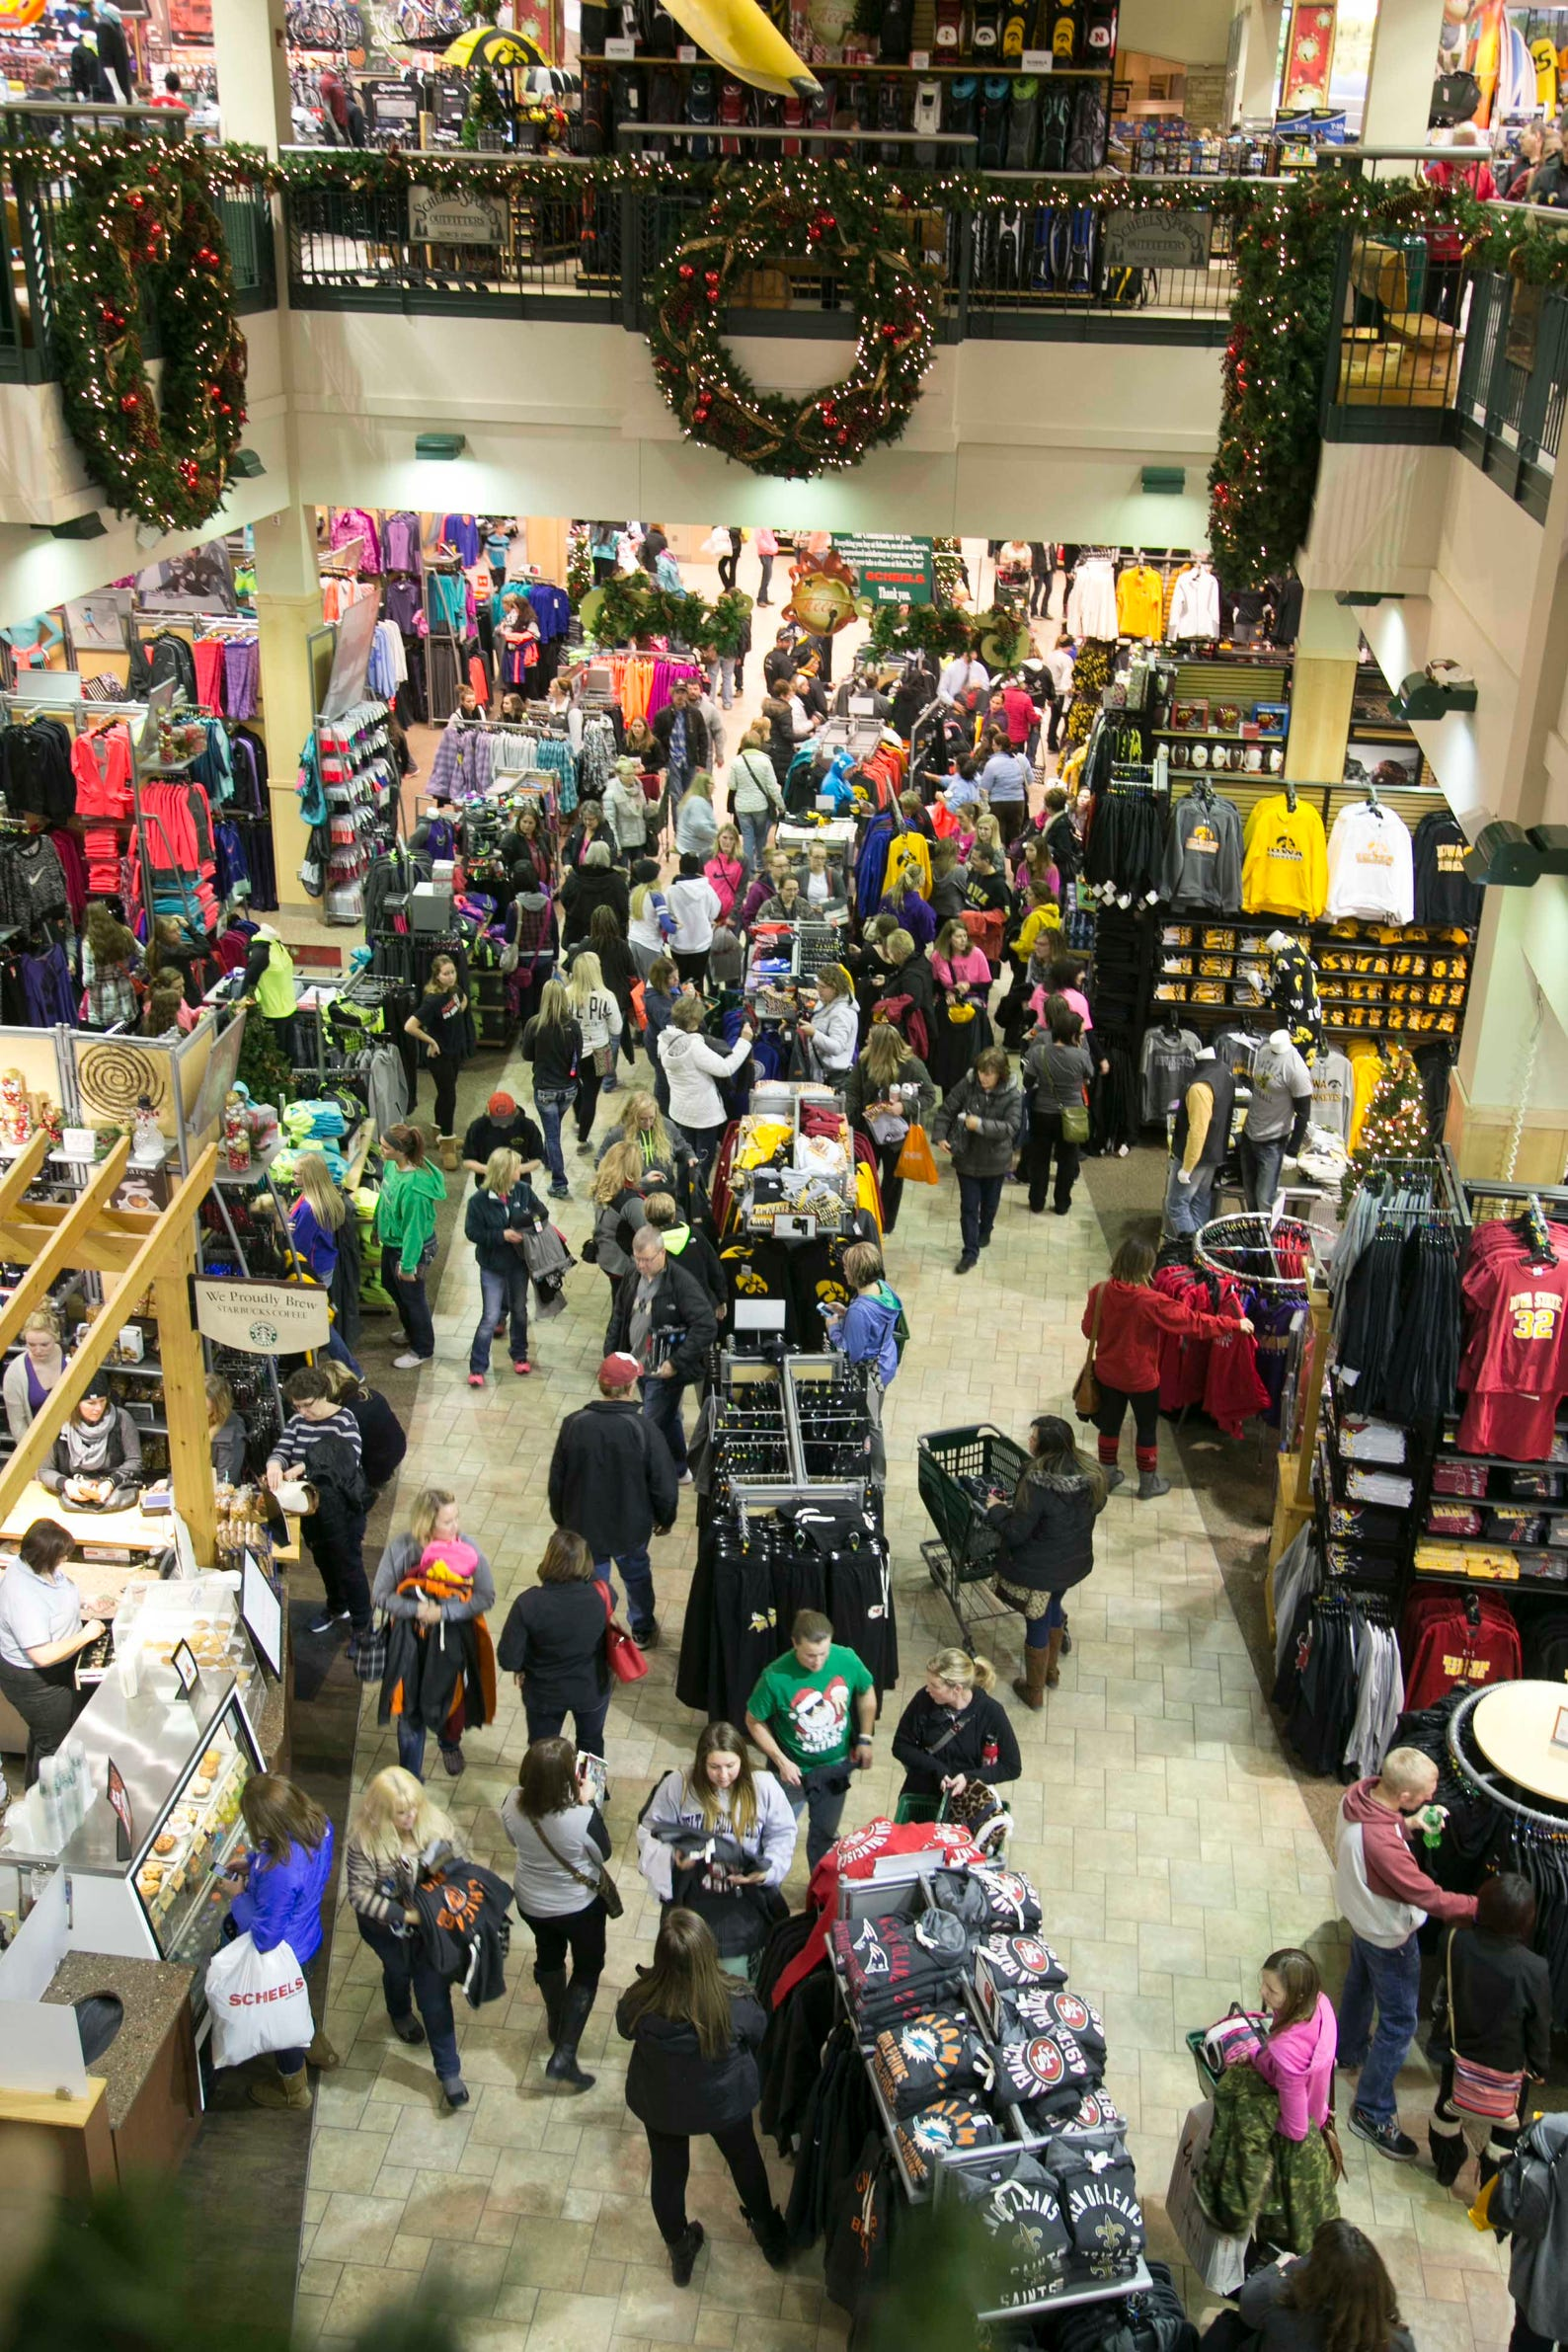 Shoppers Scramble For Deals On Black Friday